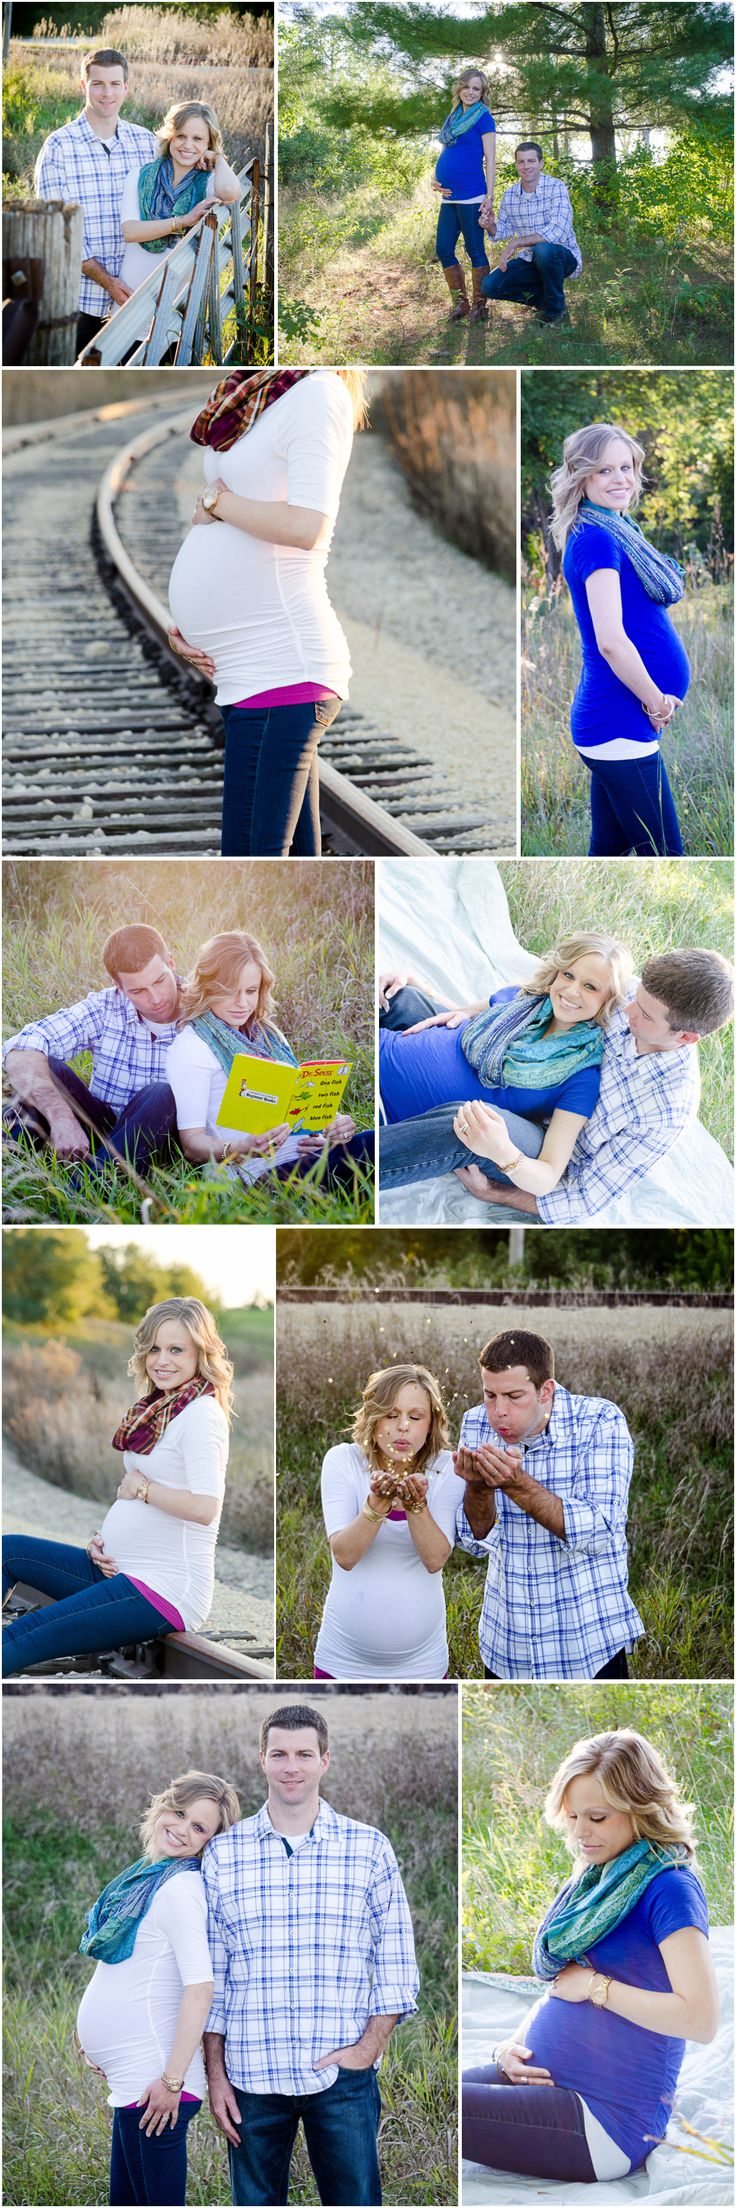 Maternity session by Chelsea Marie Photography, Northern Illinois